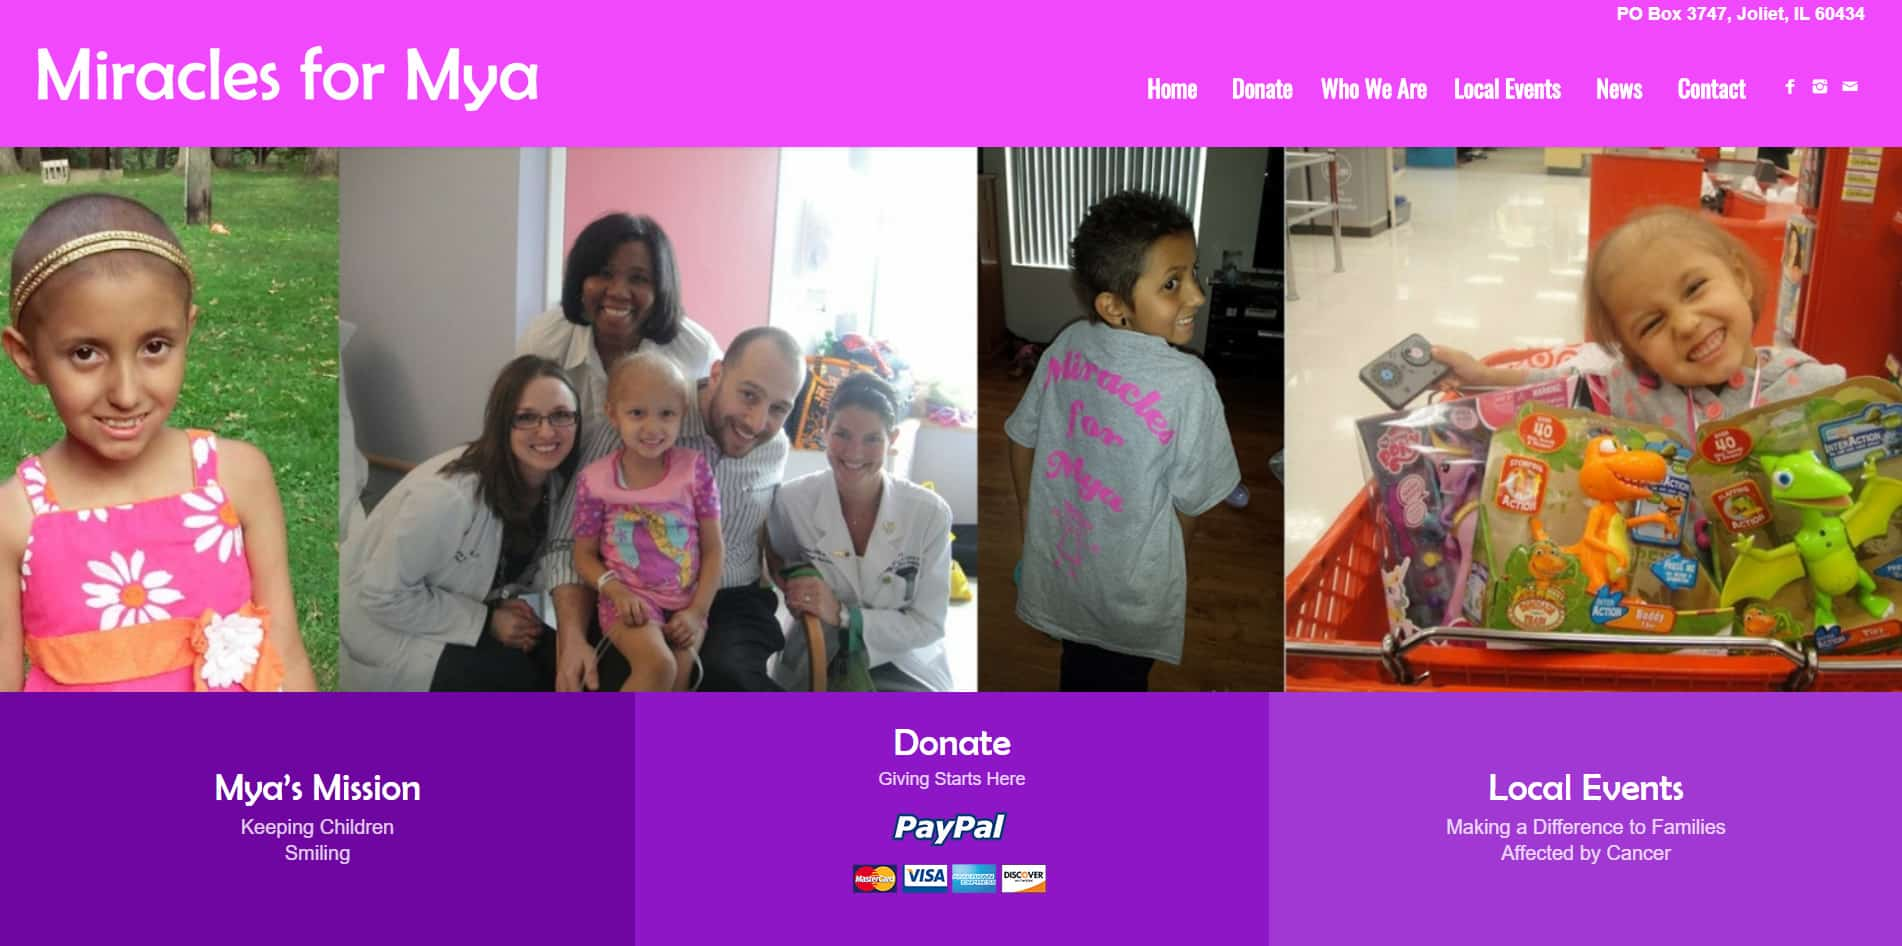 miracles for mya